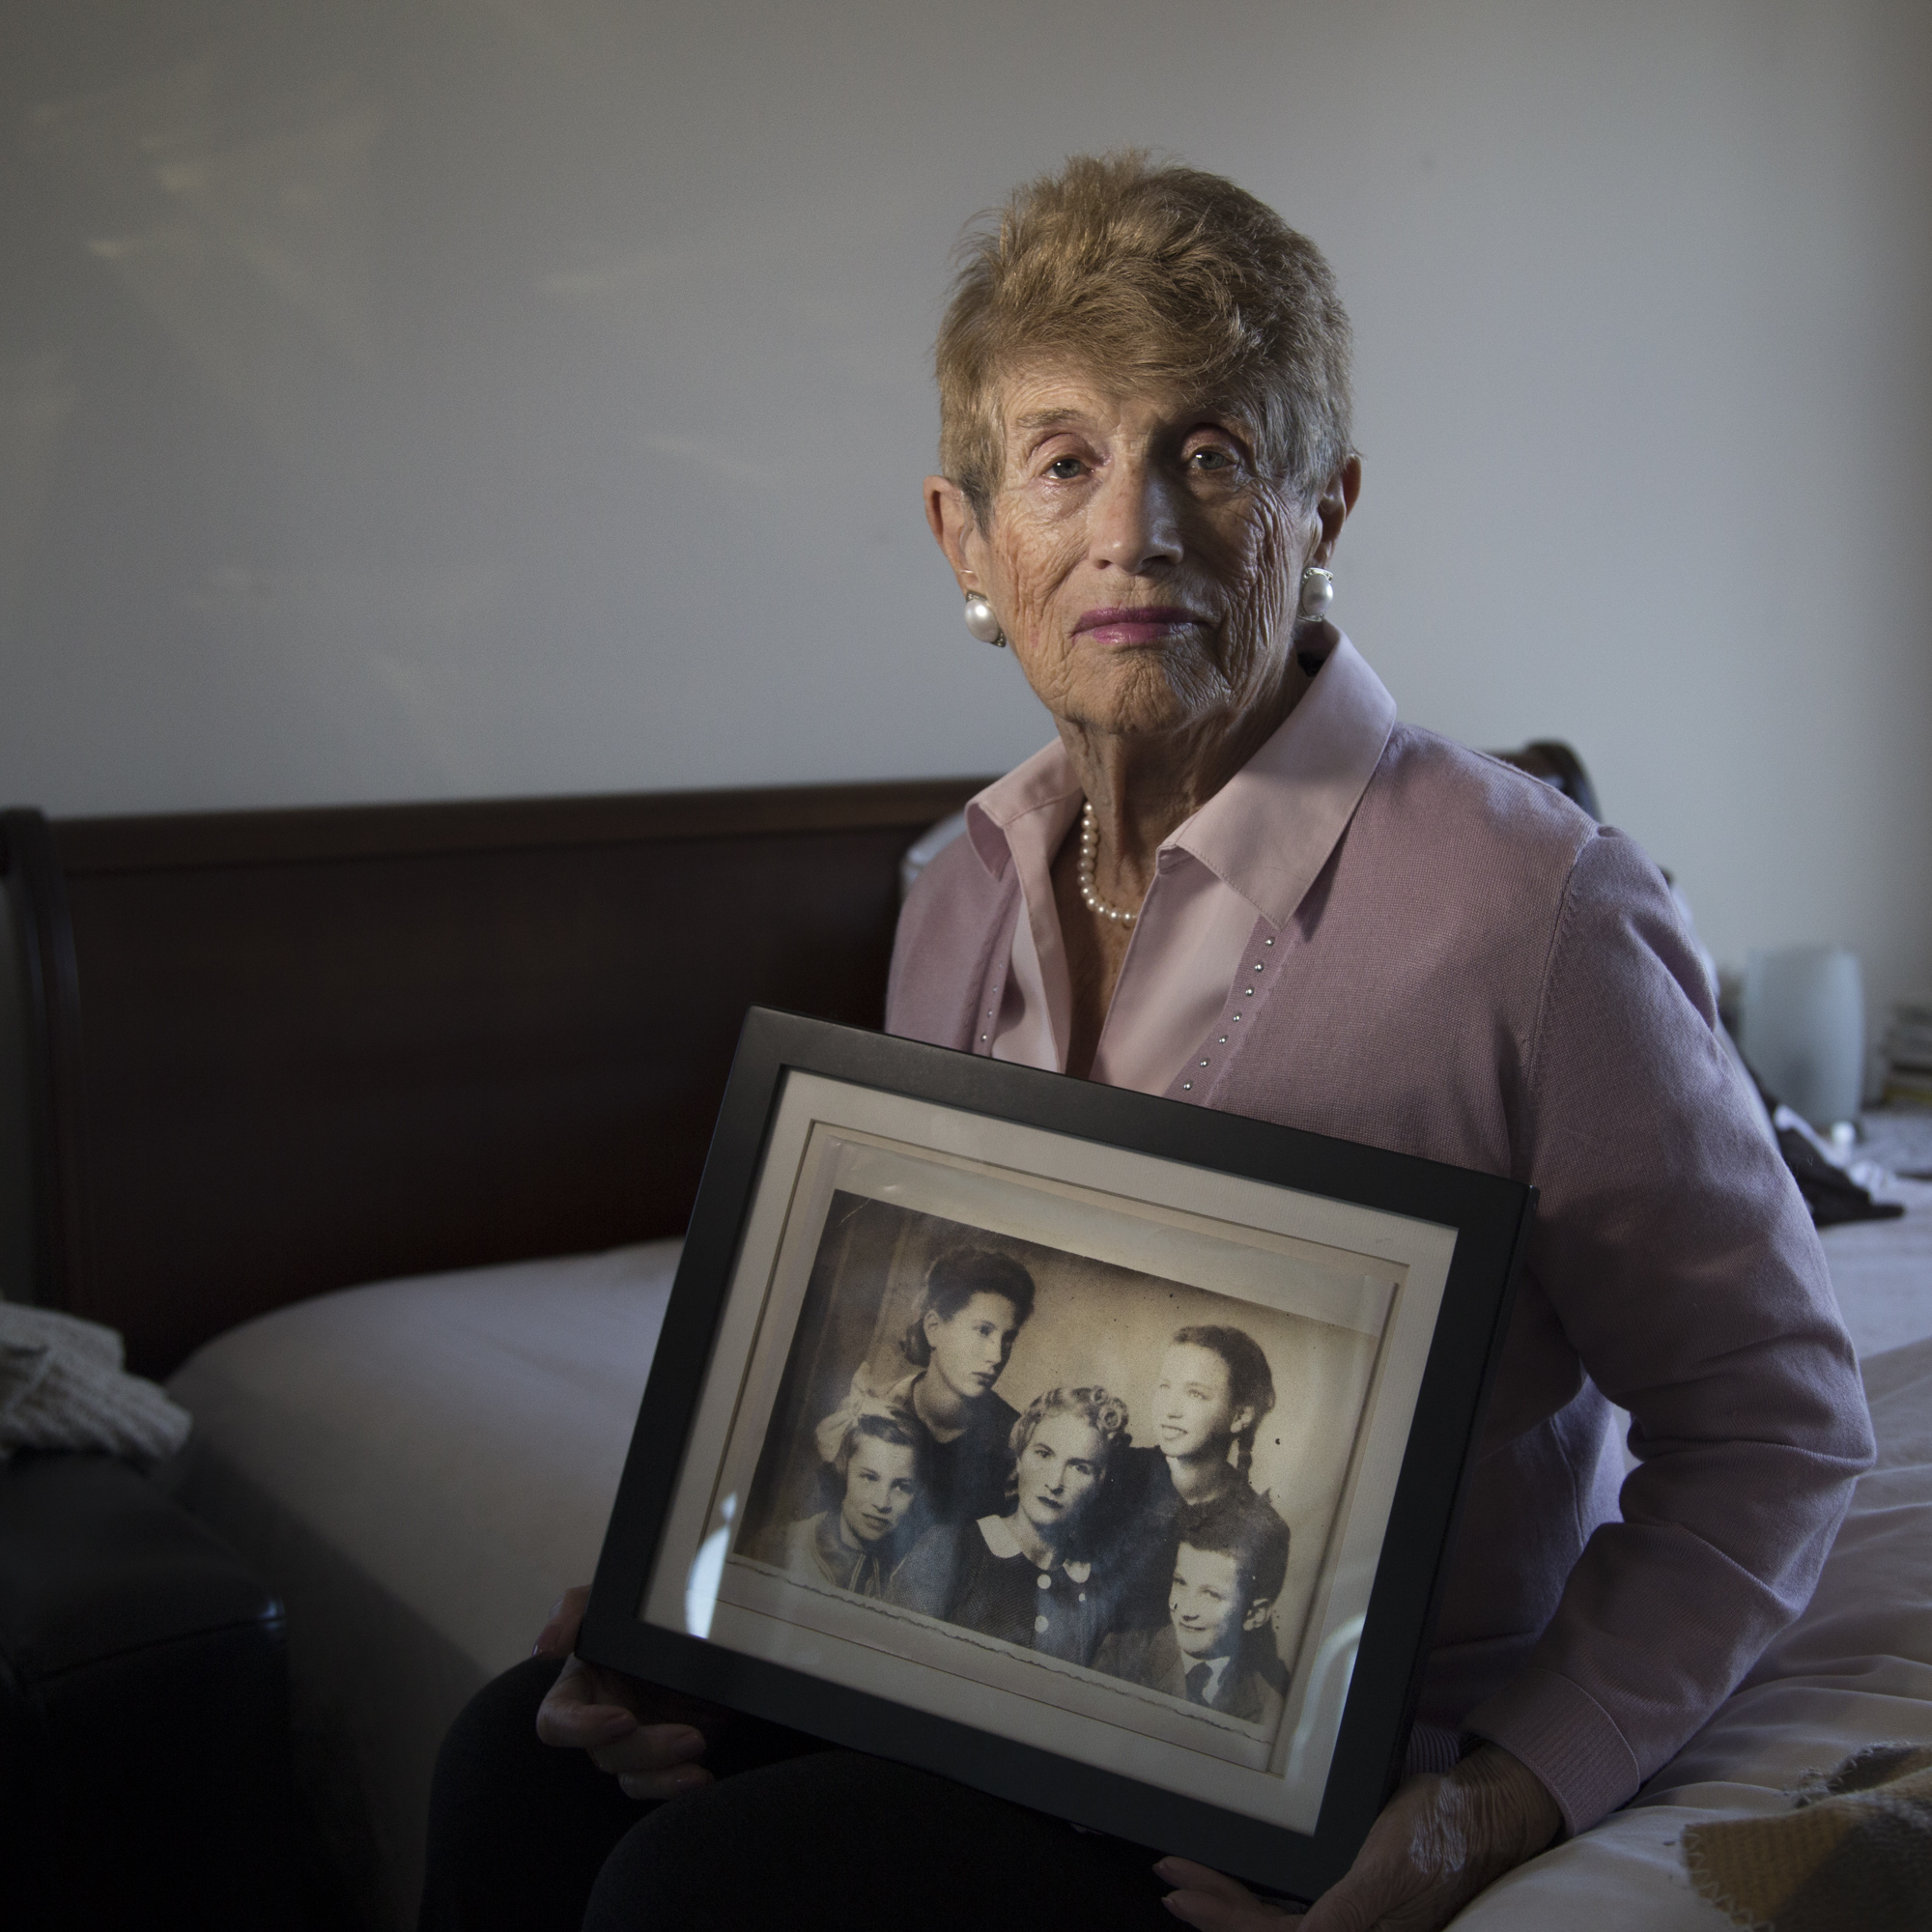 Holocaust survivor Rachel Roth holding the only photo she has of her mother and three siblings. They were all killed in Treblinka after living in the Warsaw Ghetto in Poland.